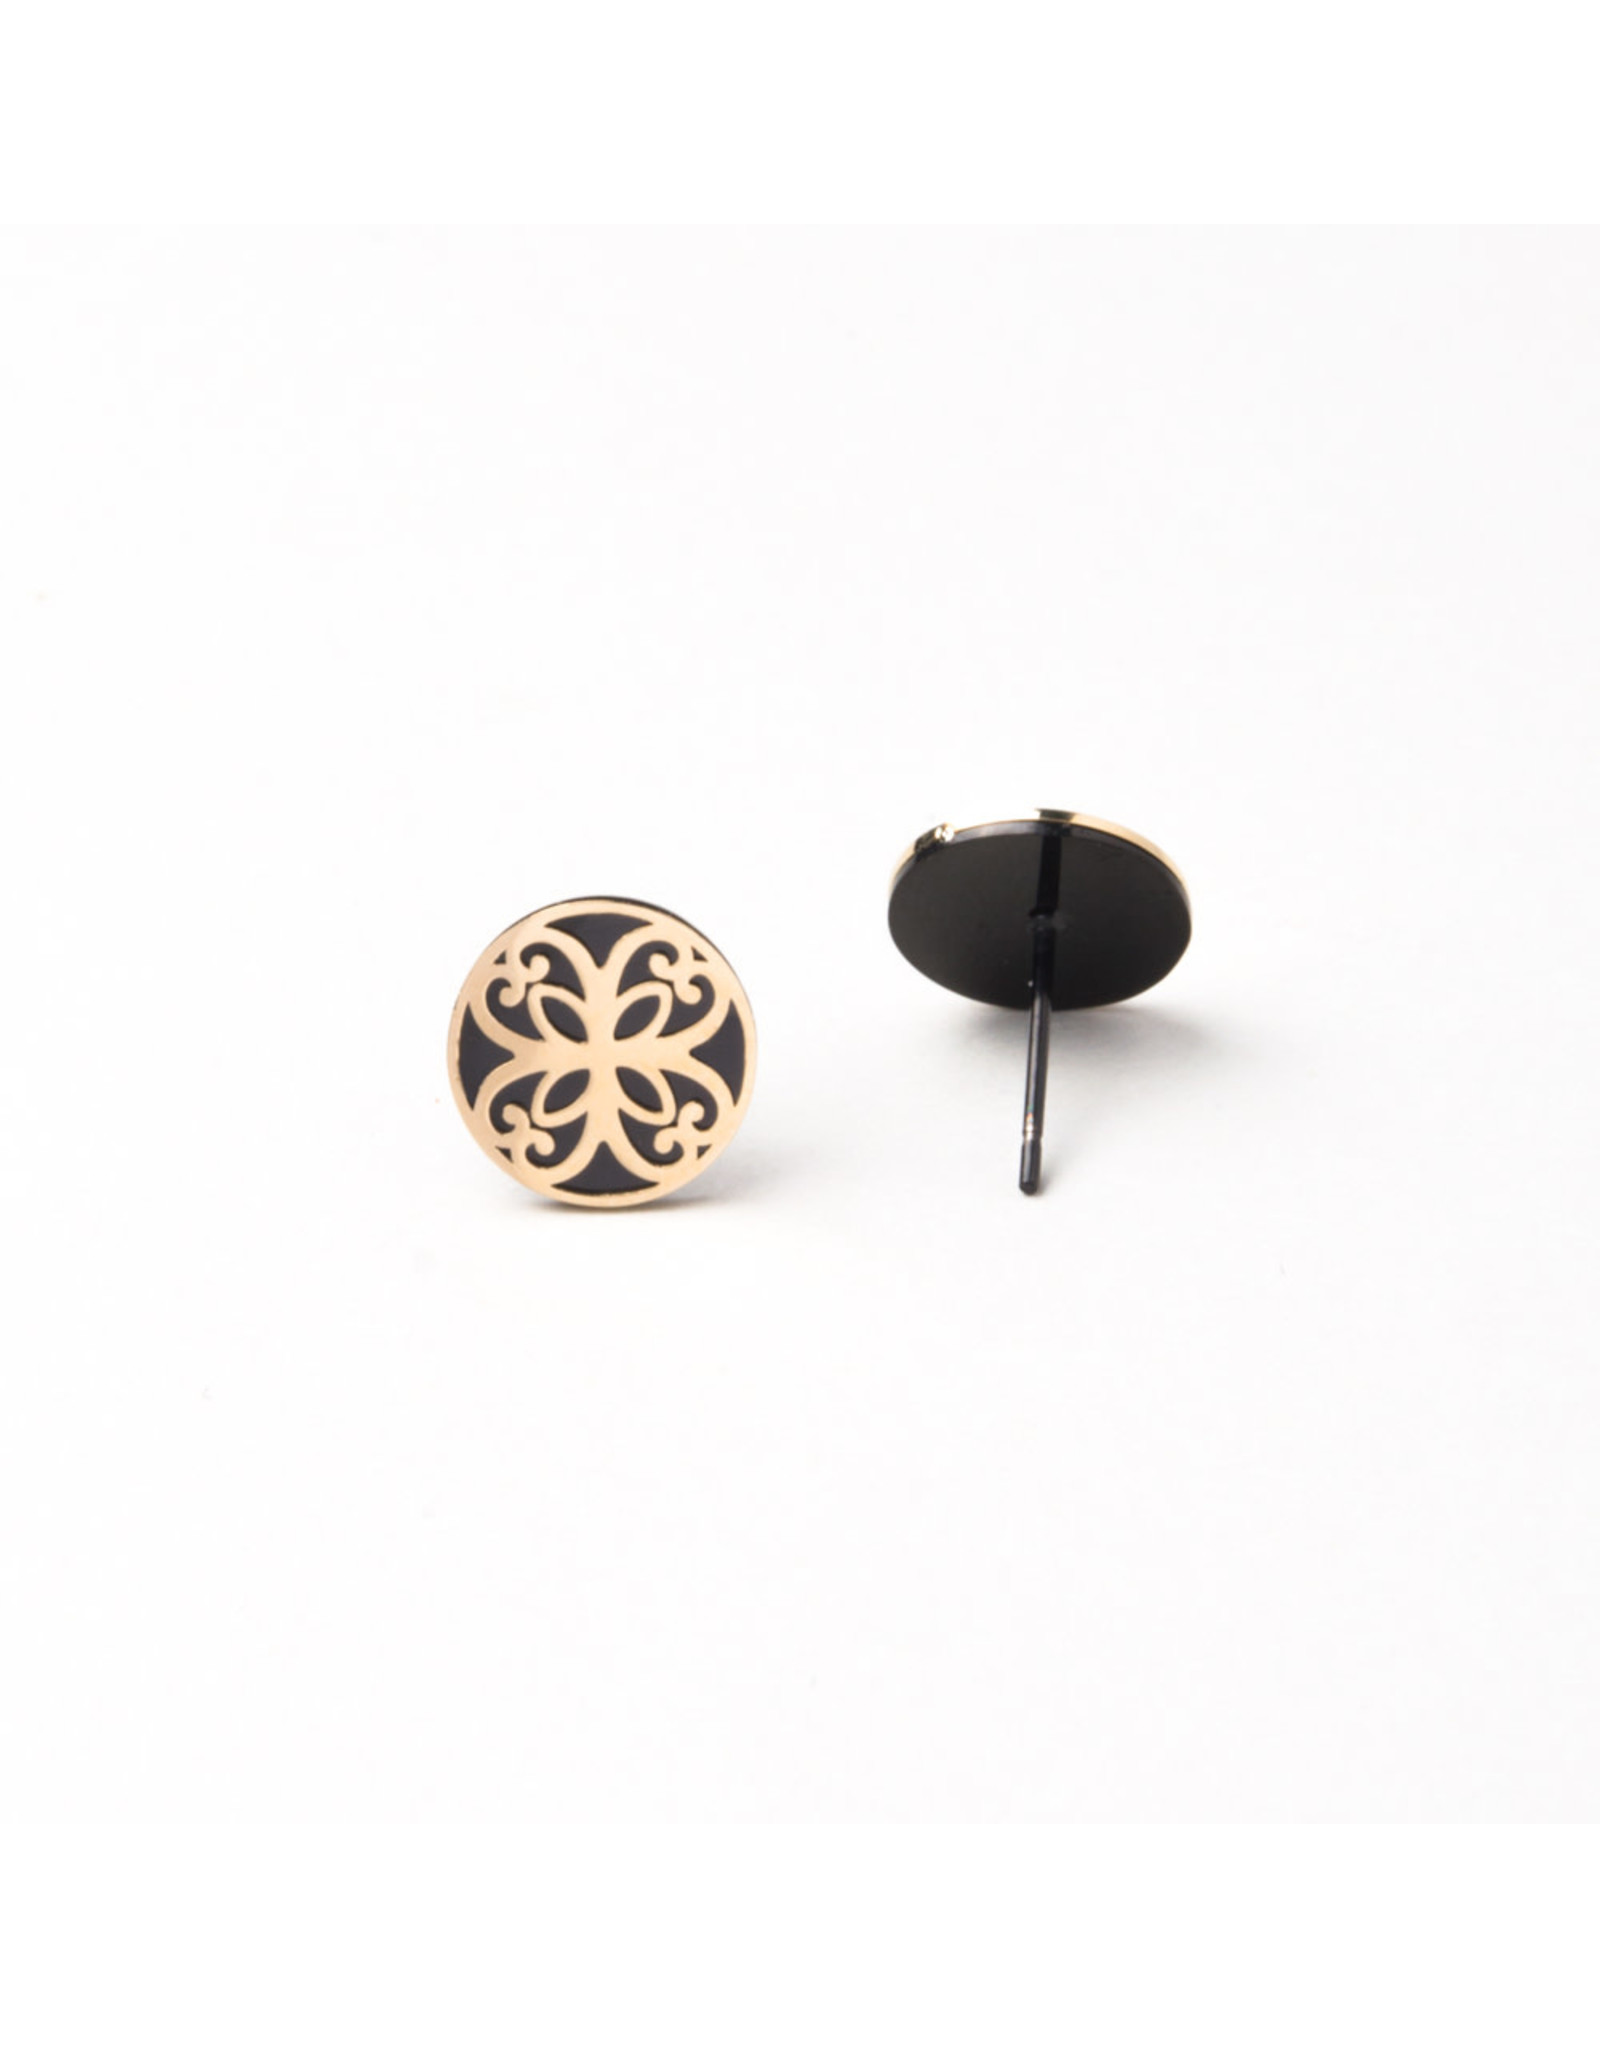 Starfish Project Maile Black Gold Stud earrings, China